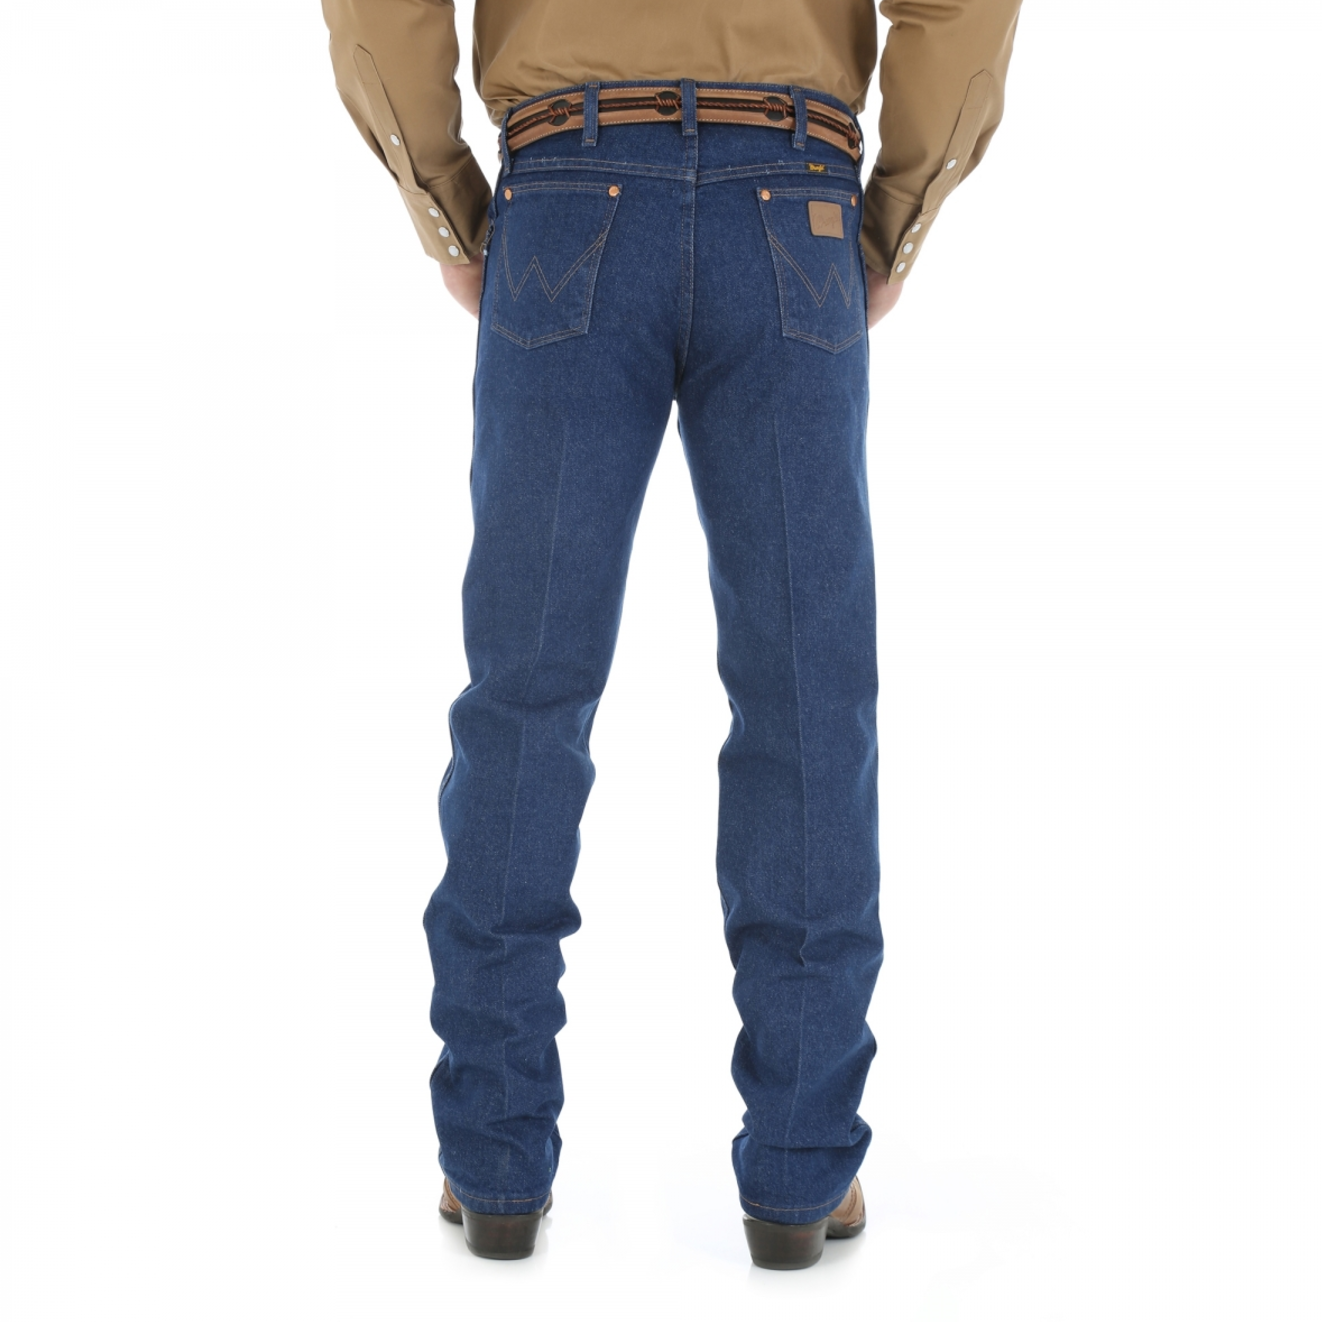 4d8ccd1d94863 Men s Wrangler 13MWZ -Extended Sizes – Western Edge